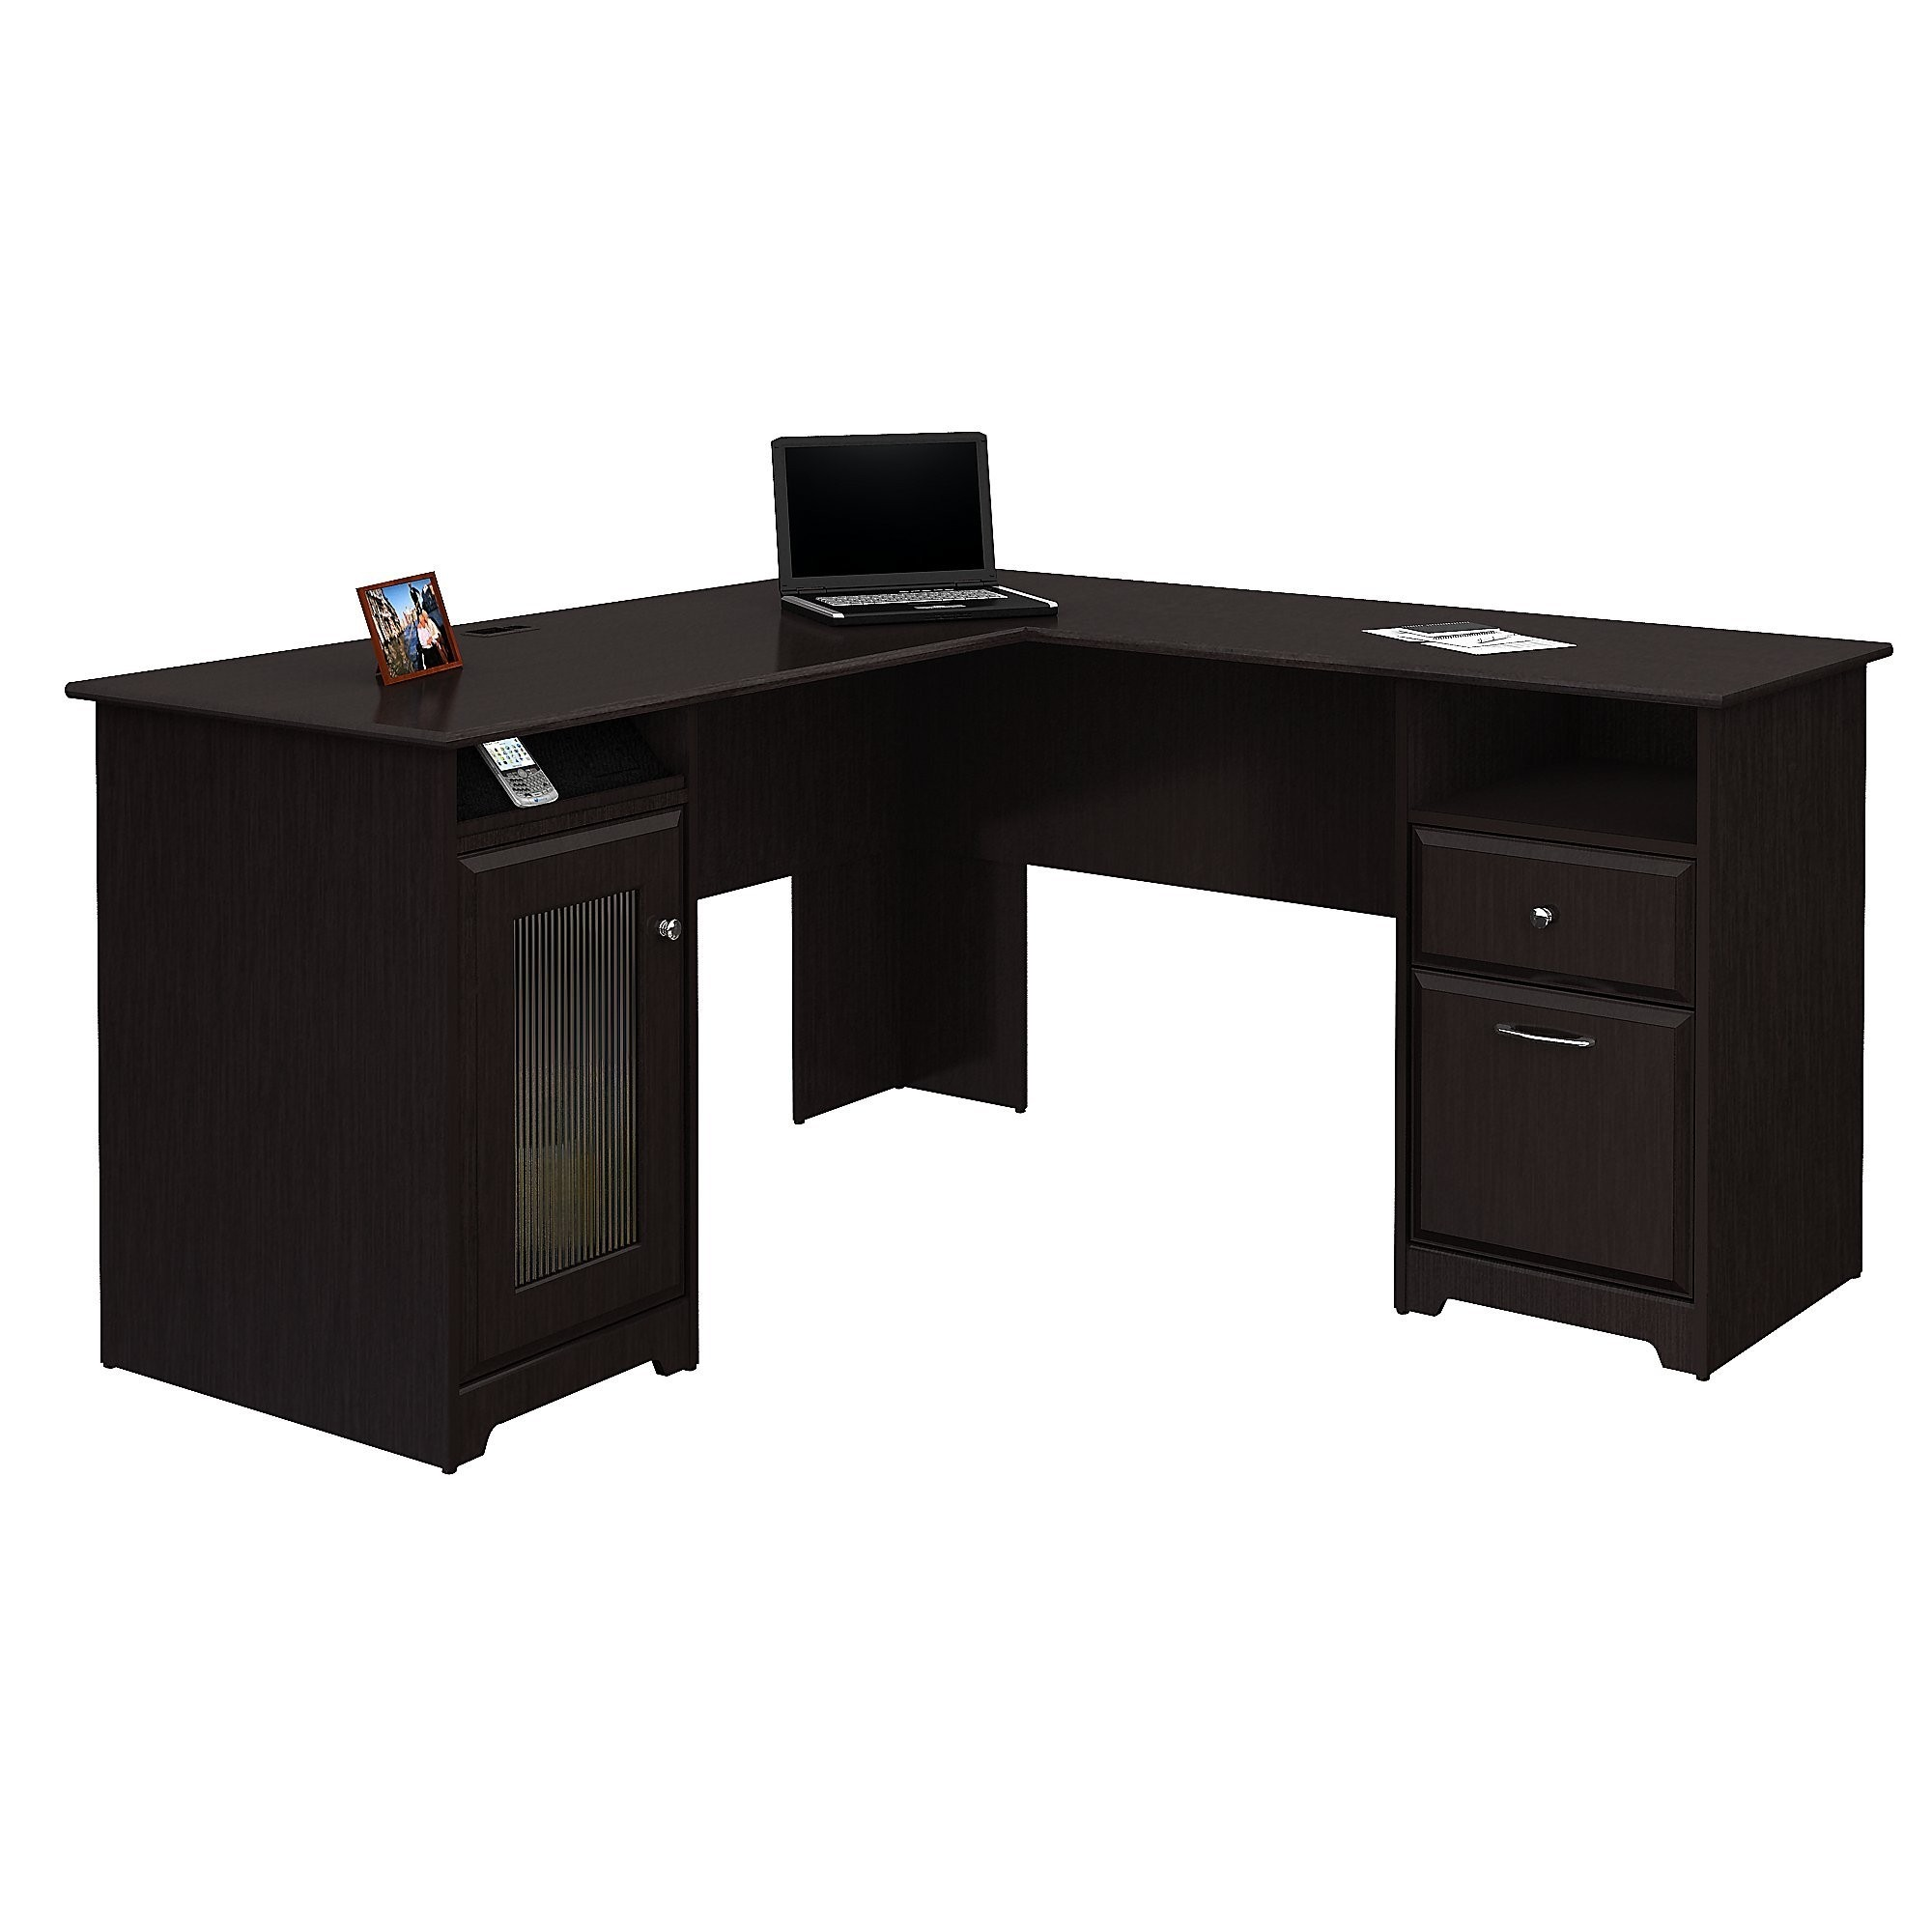 Charmant Cabot L Shape Executive Desk